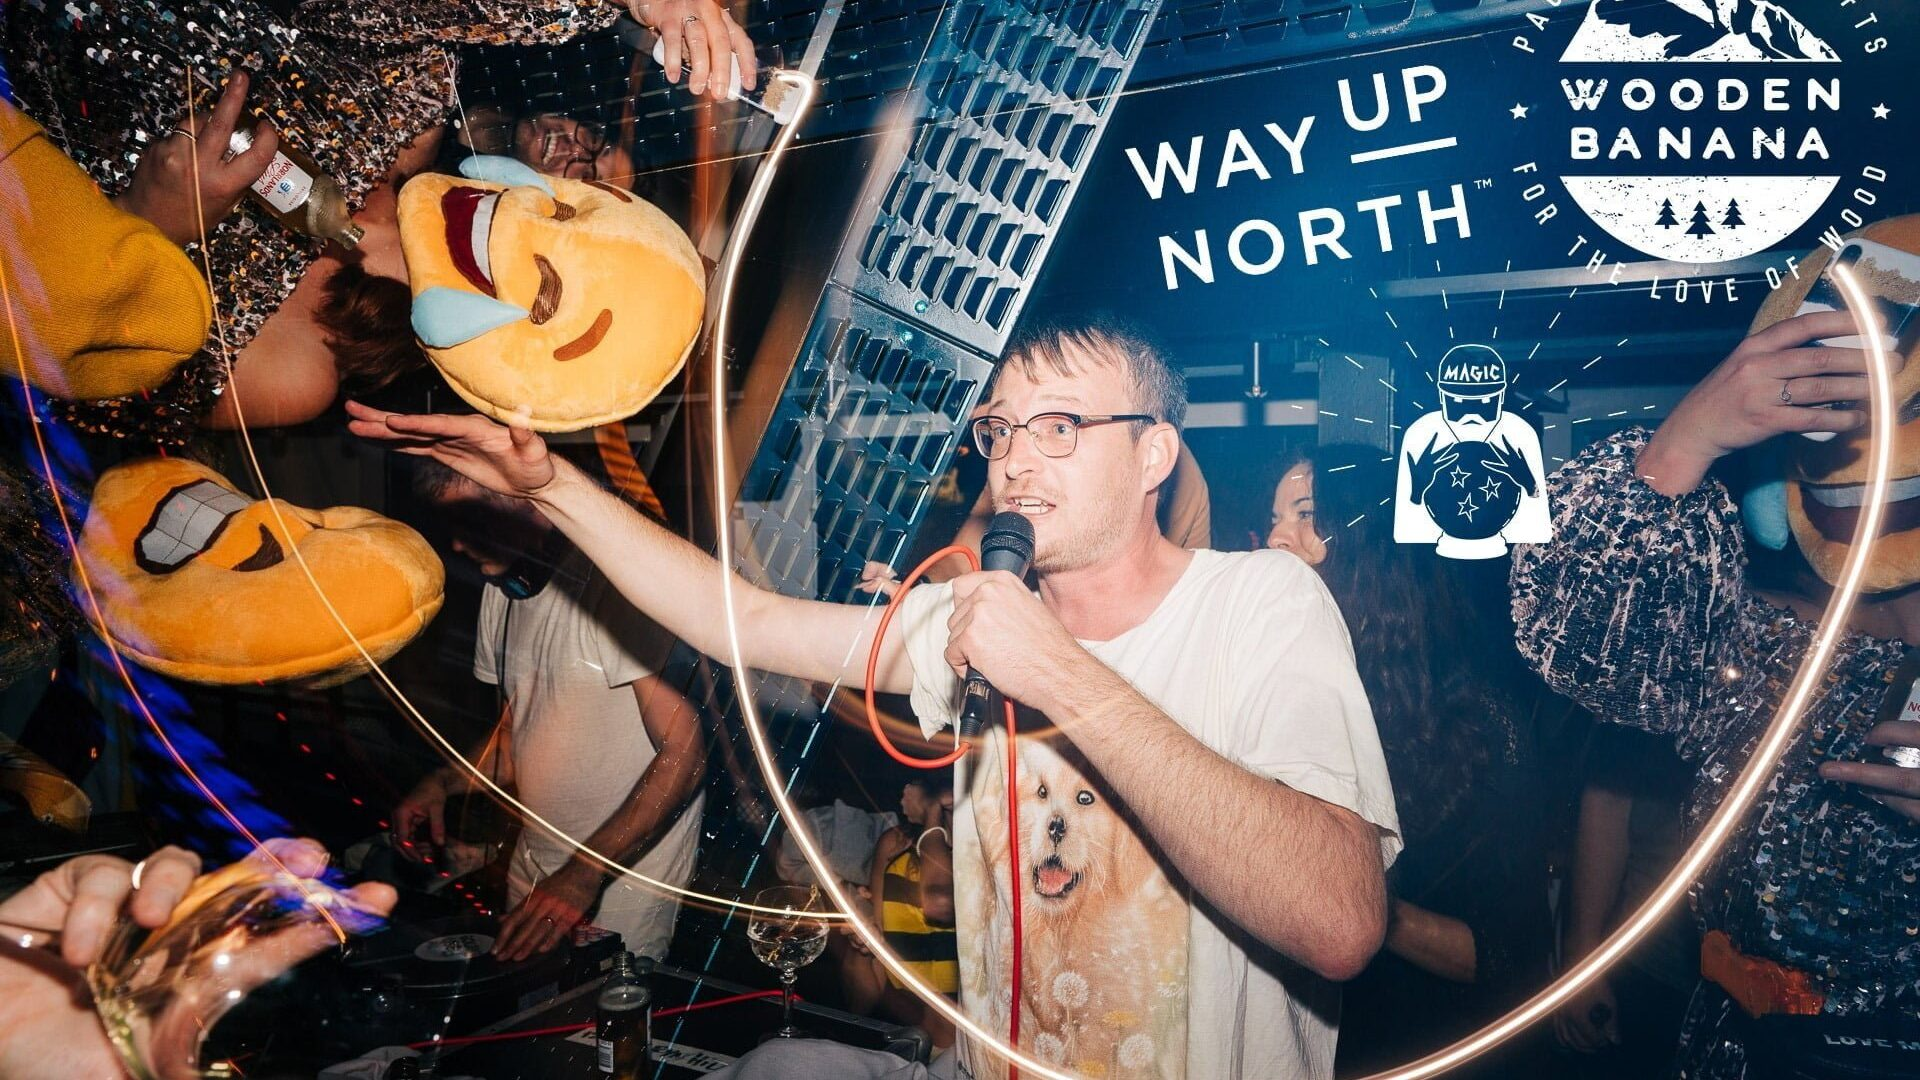 Way Up North Party in Stockholm. 4